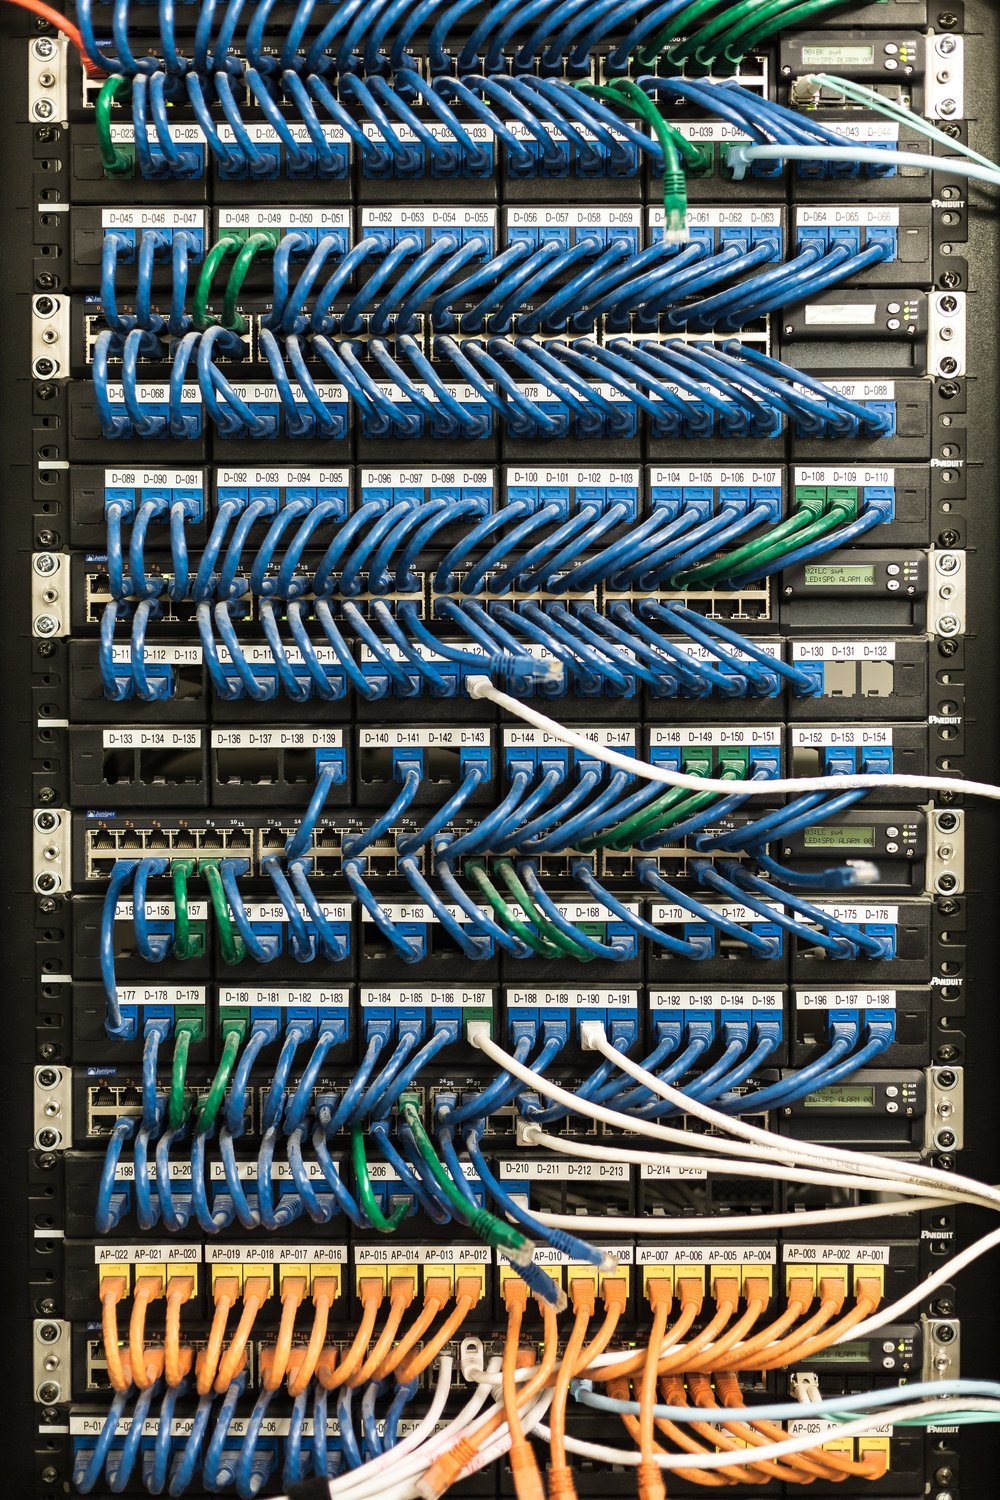 server-room-cables_4460x4460.jpg